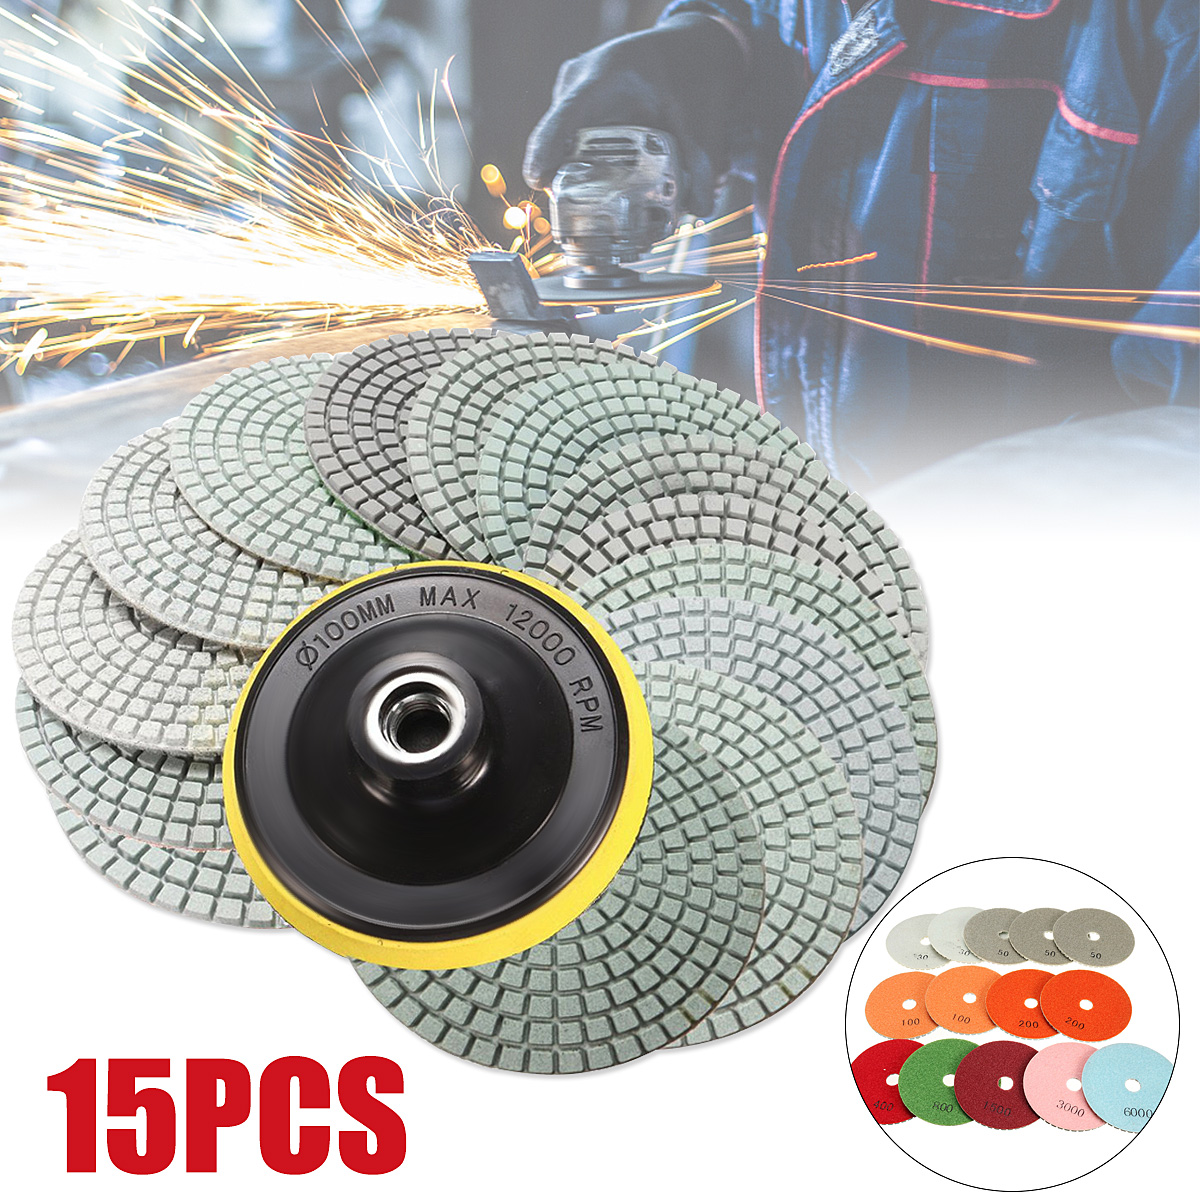 14Pcs 100mm 4inch Wet Dry Diamond Polishing Pad Grit 30#50#100#200#400#800#1500#3000#6000#+M14 For Granite Concrete Stone Marble